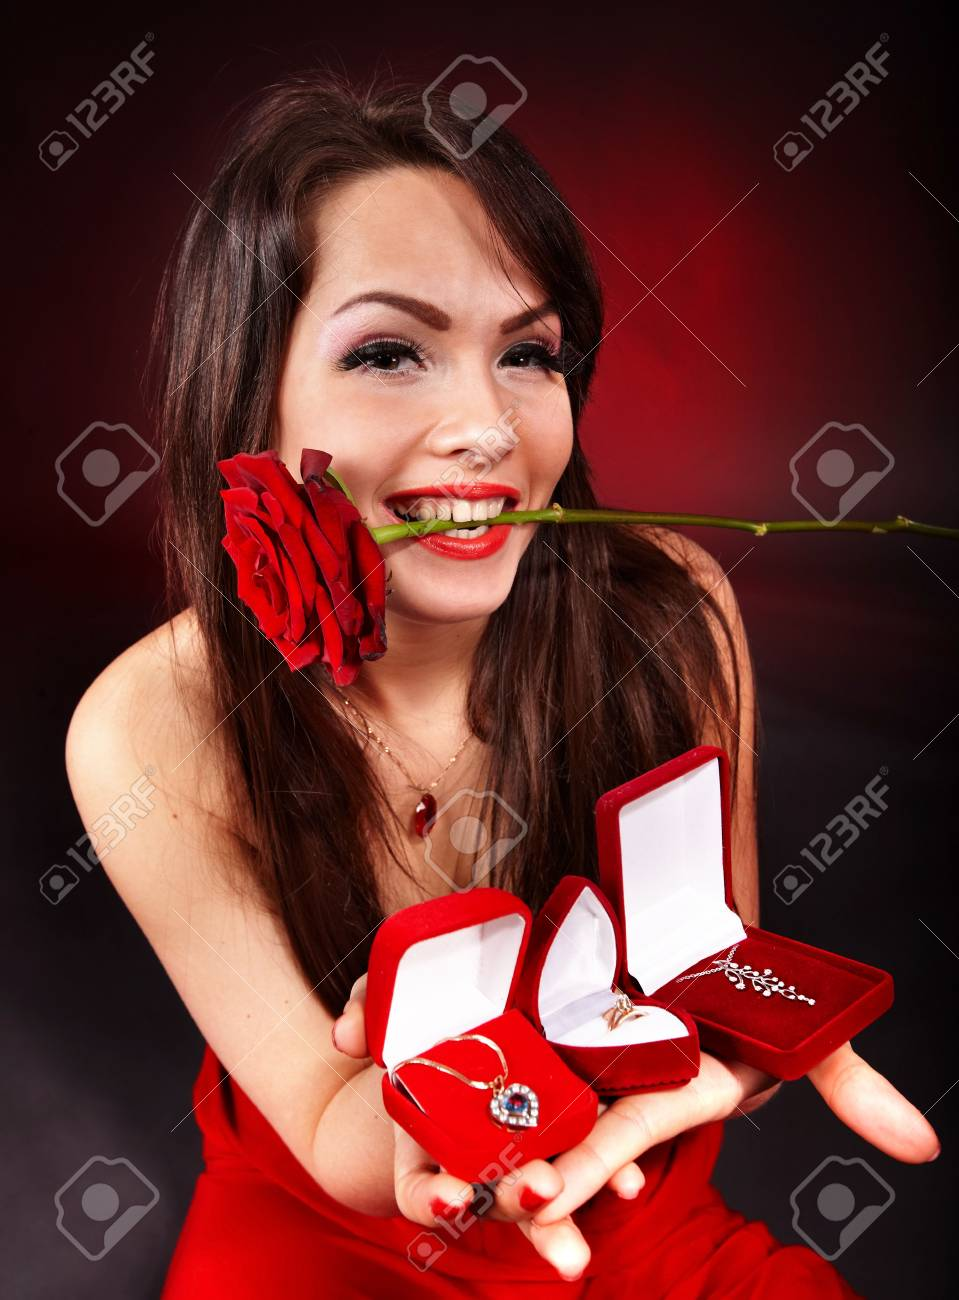 Girl with group jewellery gift box and rose on red  background.   Valentines day. Stock Photo - 6283875